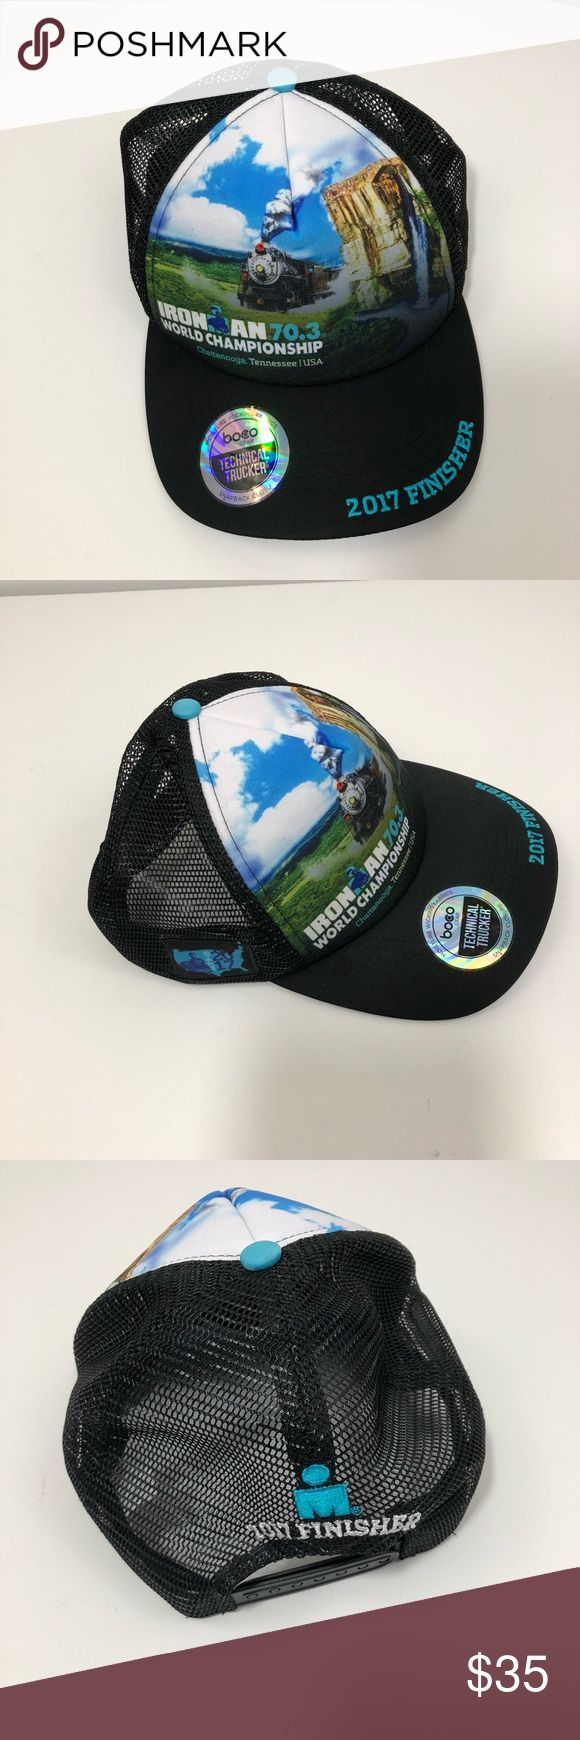 Iron Man World Championship Hat 2017 Chattanooga Technical trucker hat by BOCO Gear Ironman 70.3 World Championship Chattanooga Choo-Choo image Sept 9-10, 2017 date on the side 2017 Finisher Ironman Accessories Hats